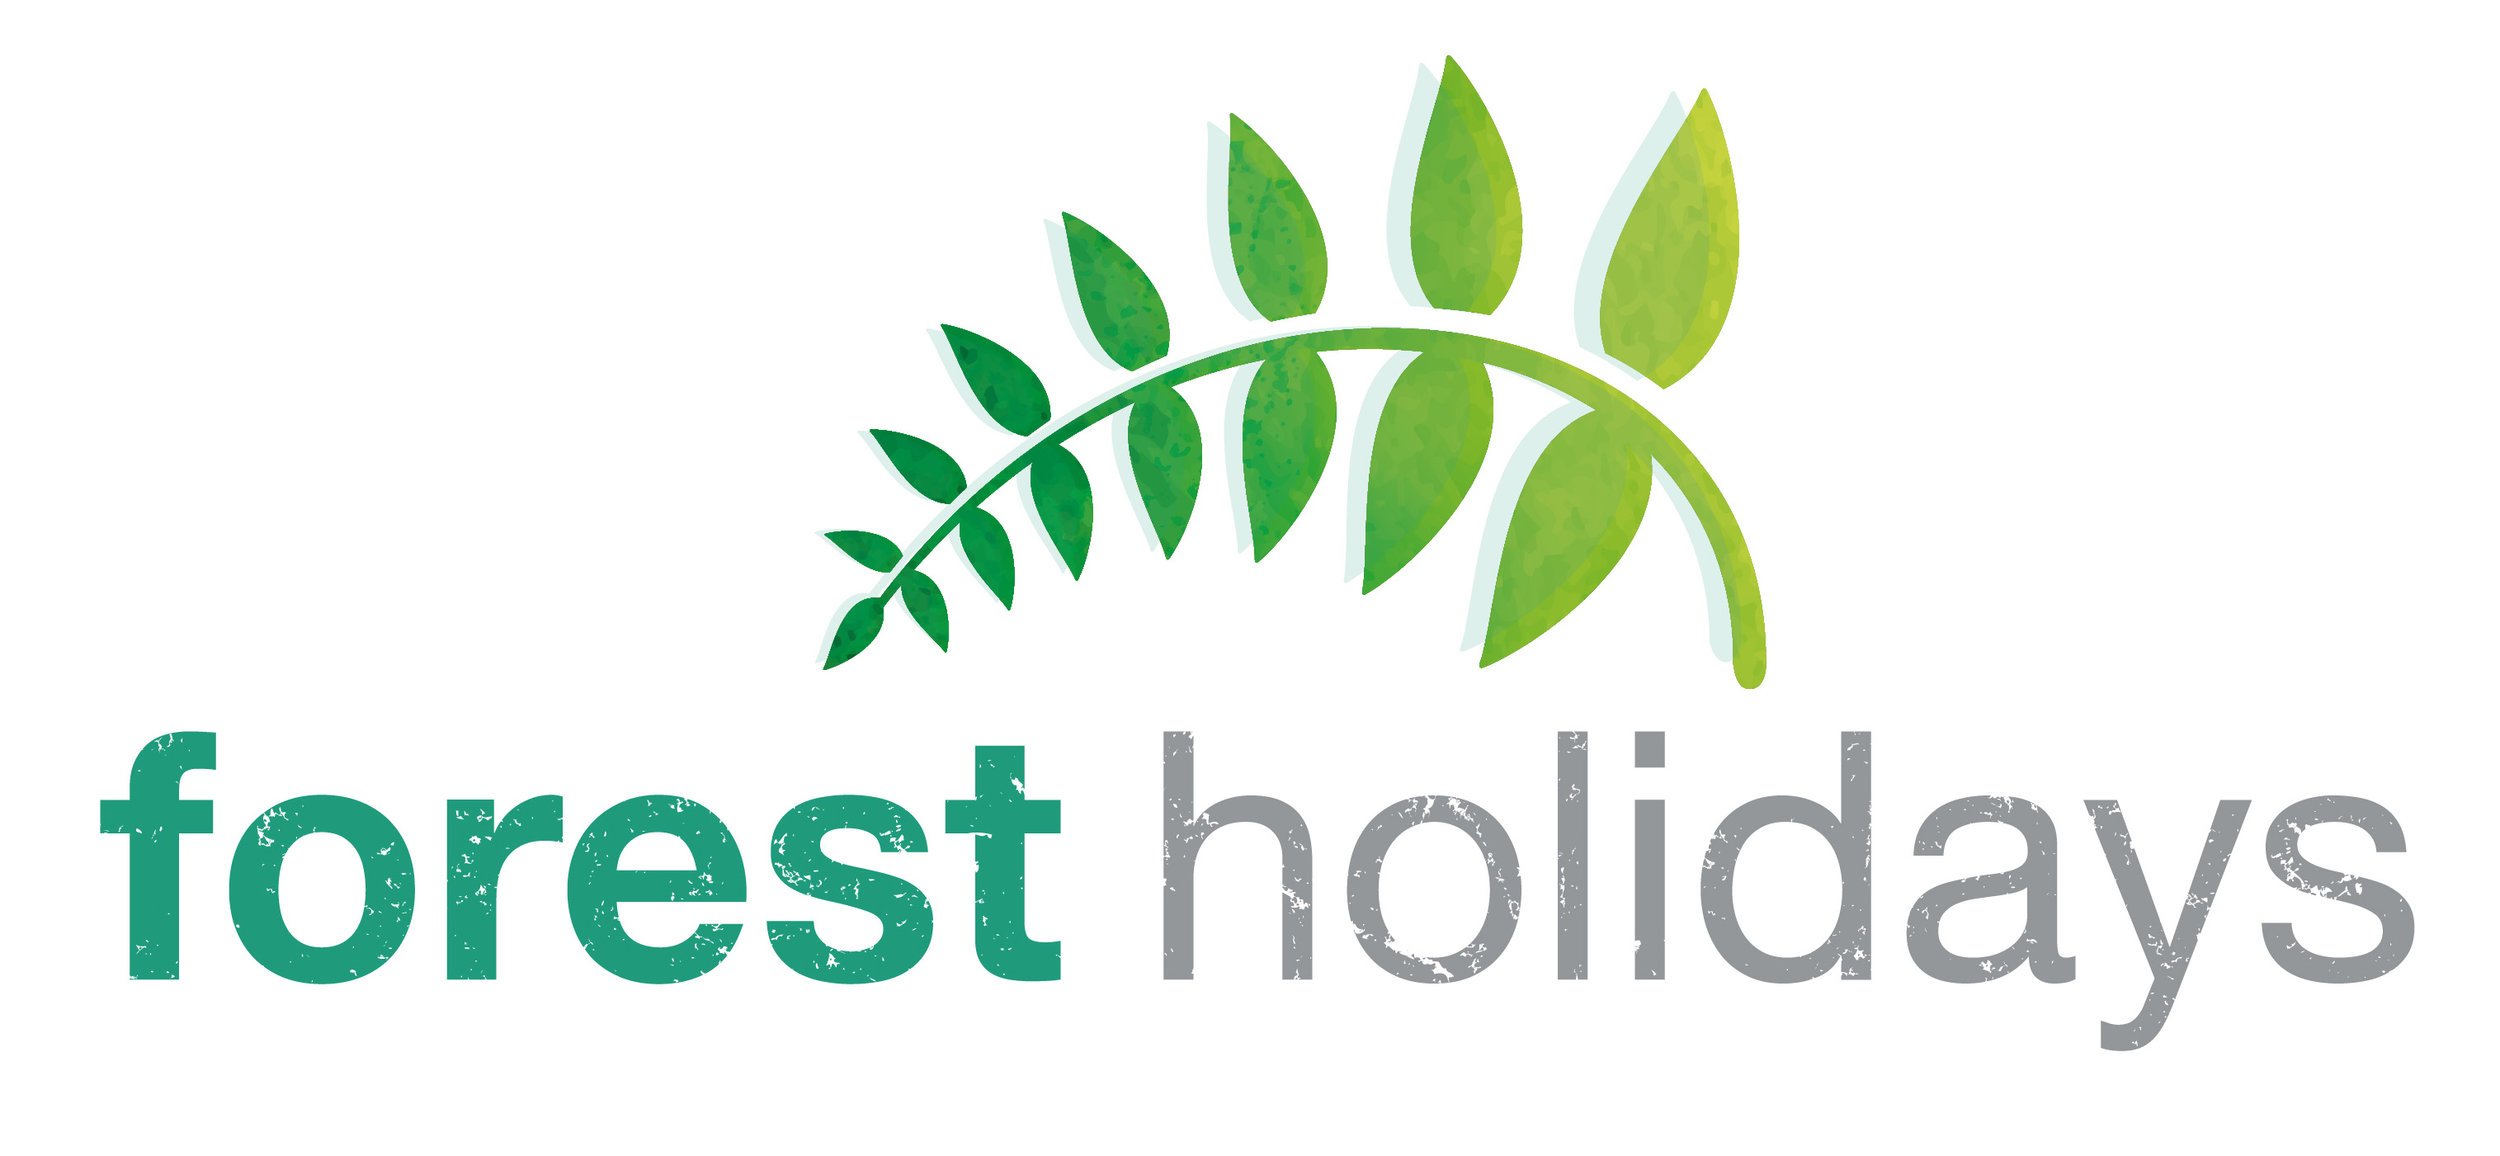 FOREST HOLIDAY MASTER LOGO L.jpg